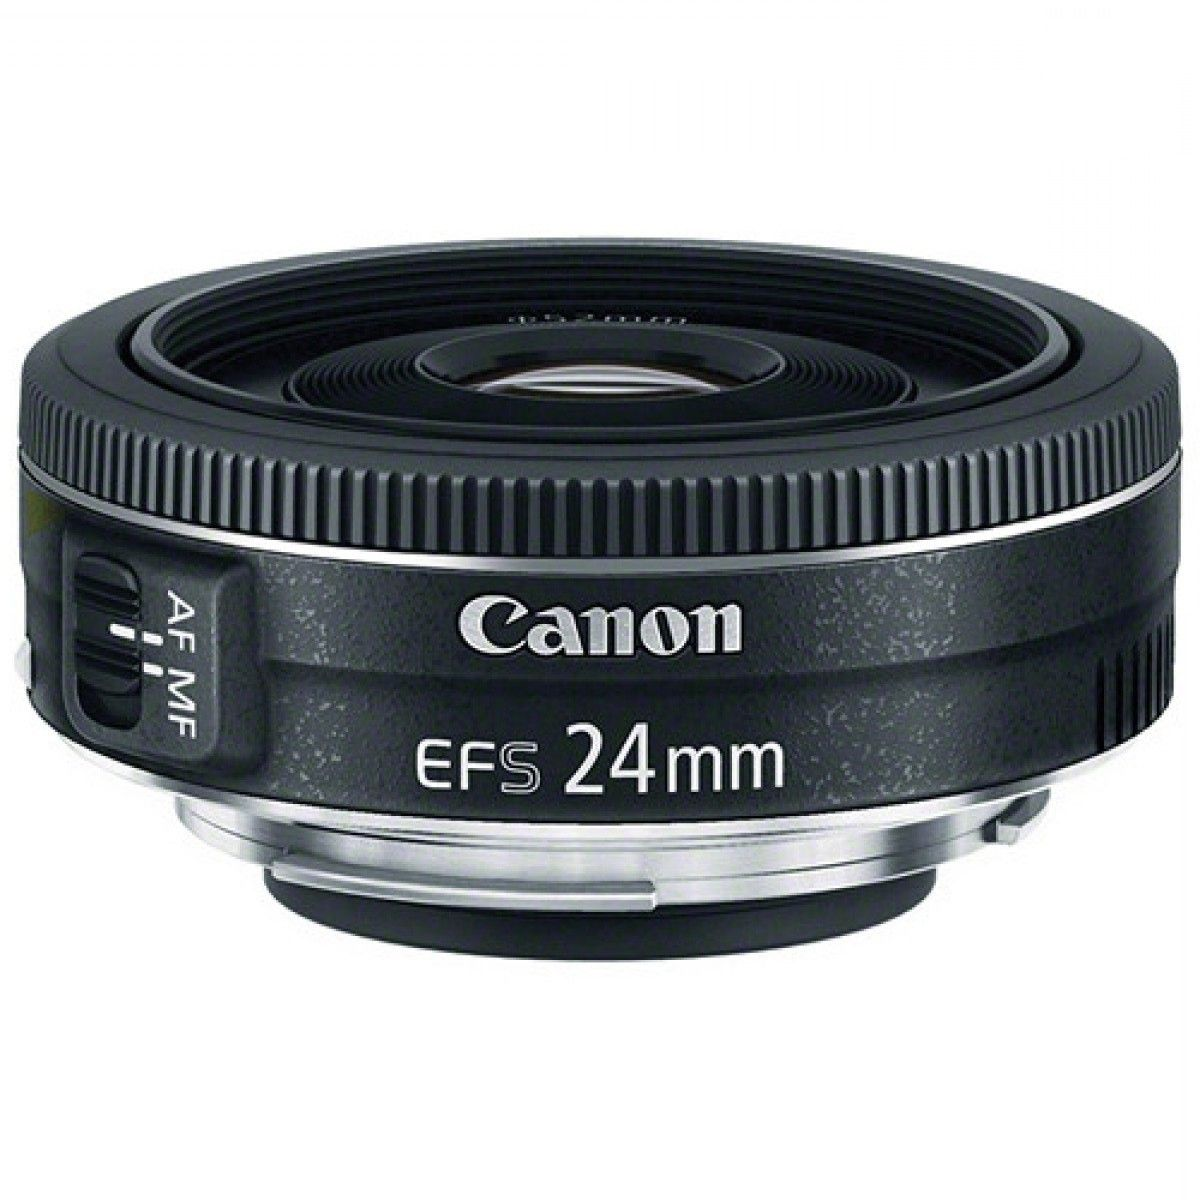 Objetiva Canon 24mm f/2.8 IS EF USM